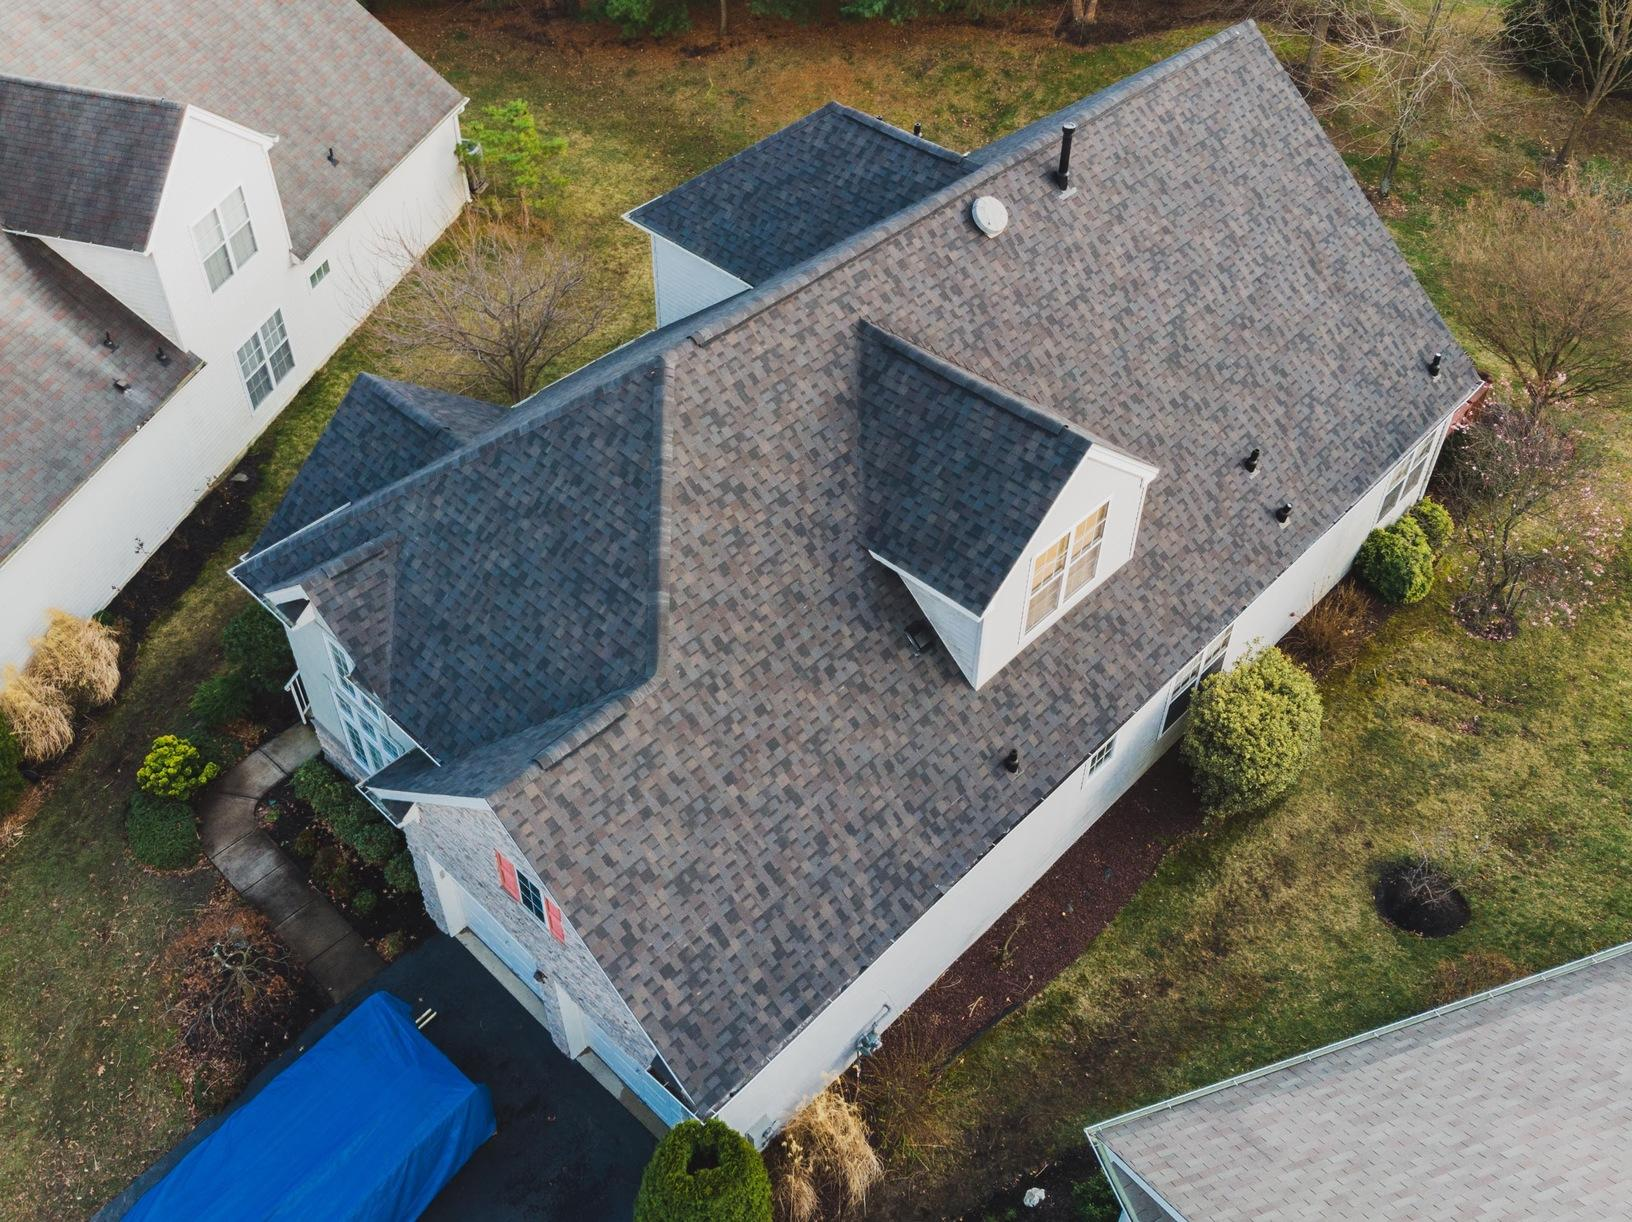 New Roof Installed In West Windsor, NJ - After Photo